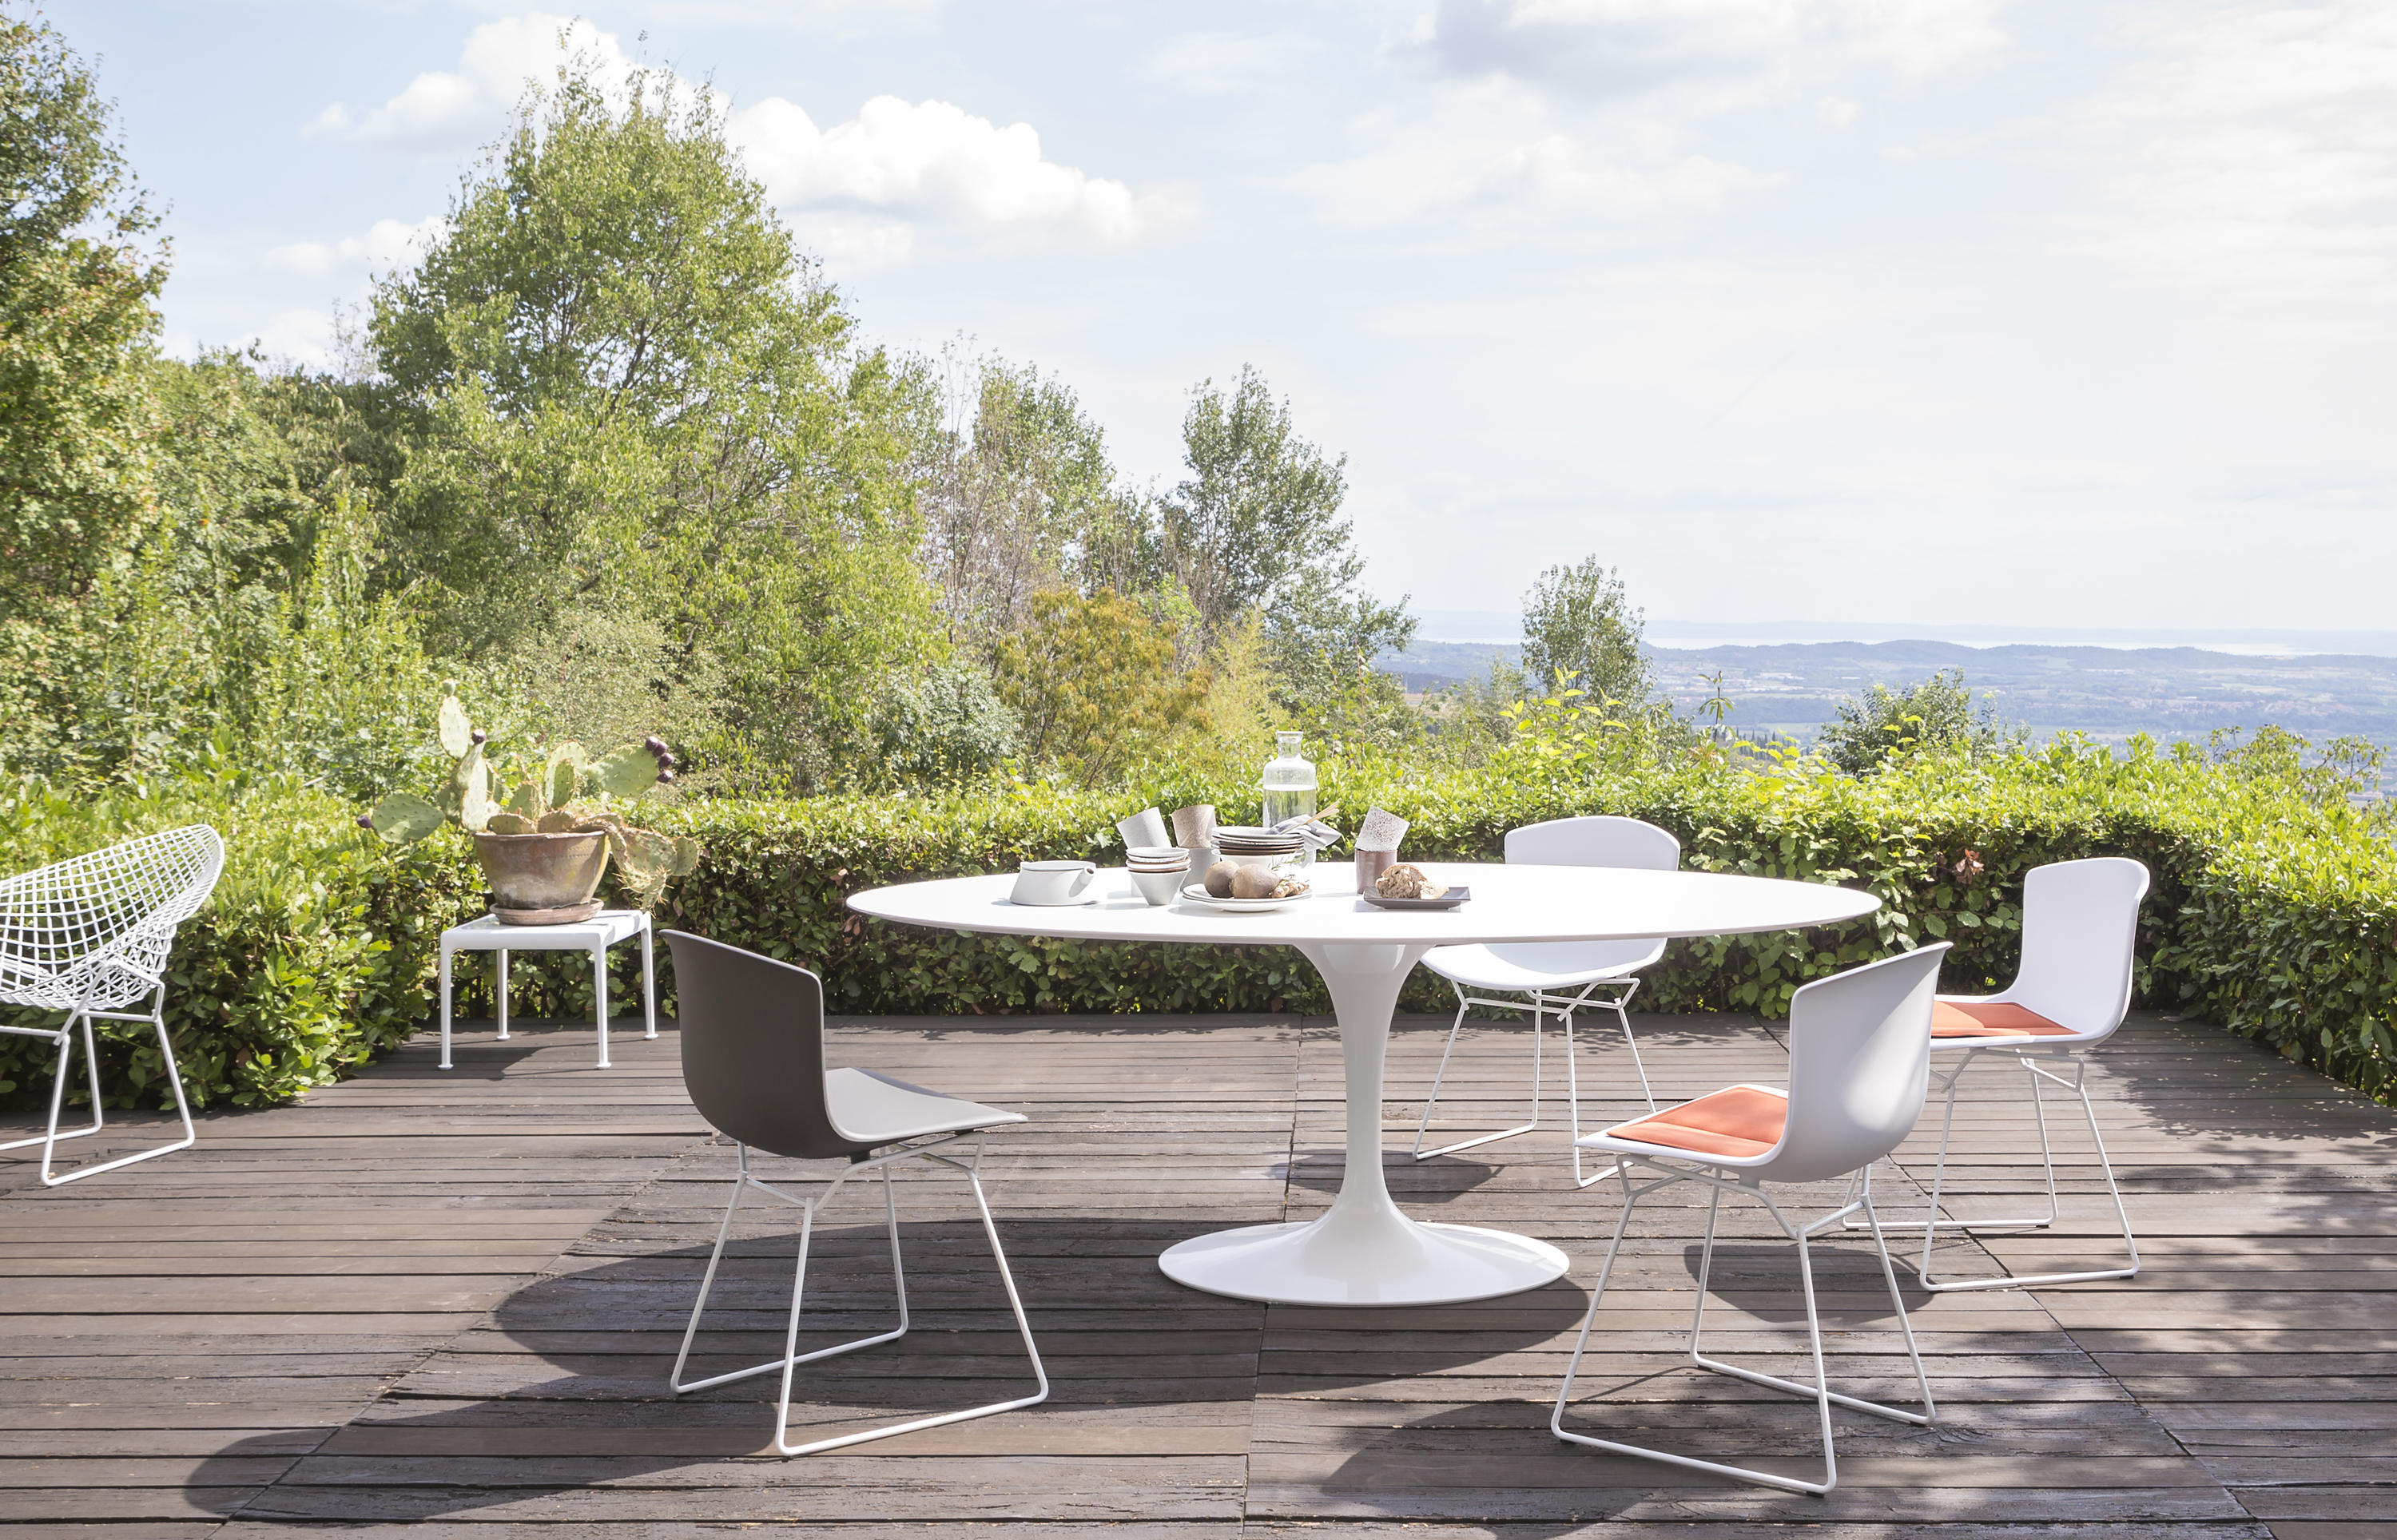 bertoia side chair outdoor garden chairs from knoll. Black Bedroom Furniture Sets. Home Design Ideas